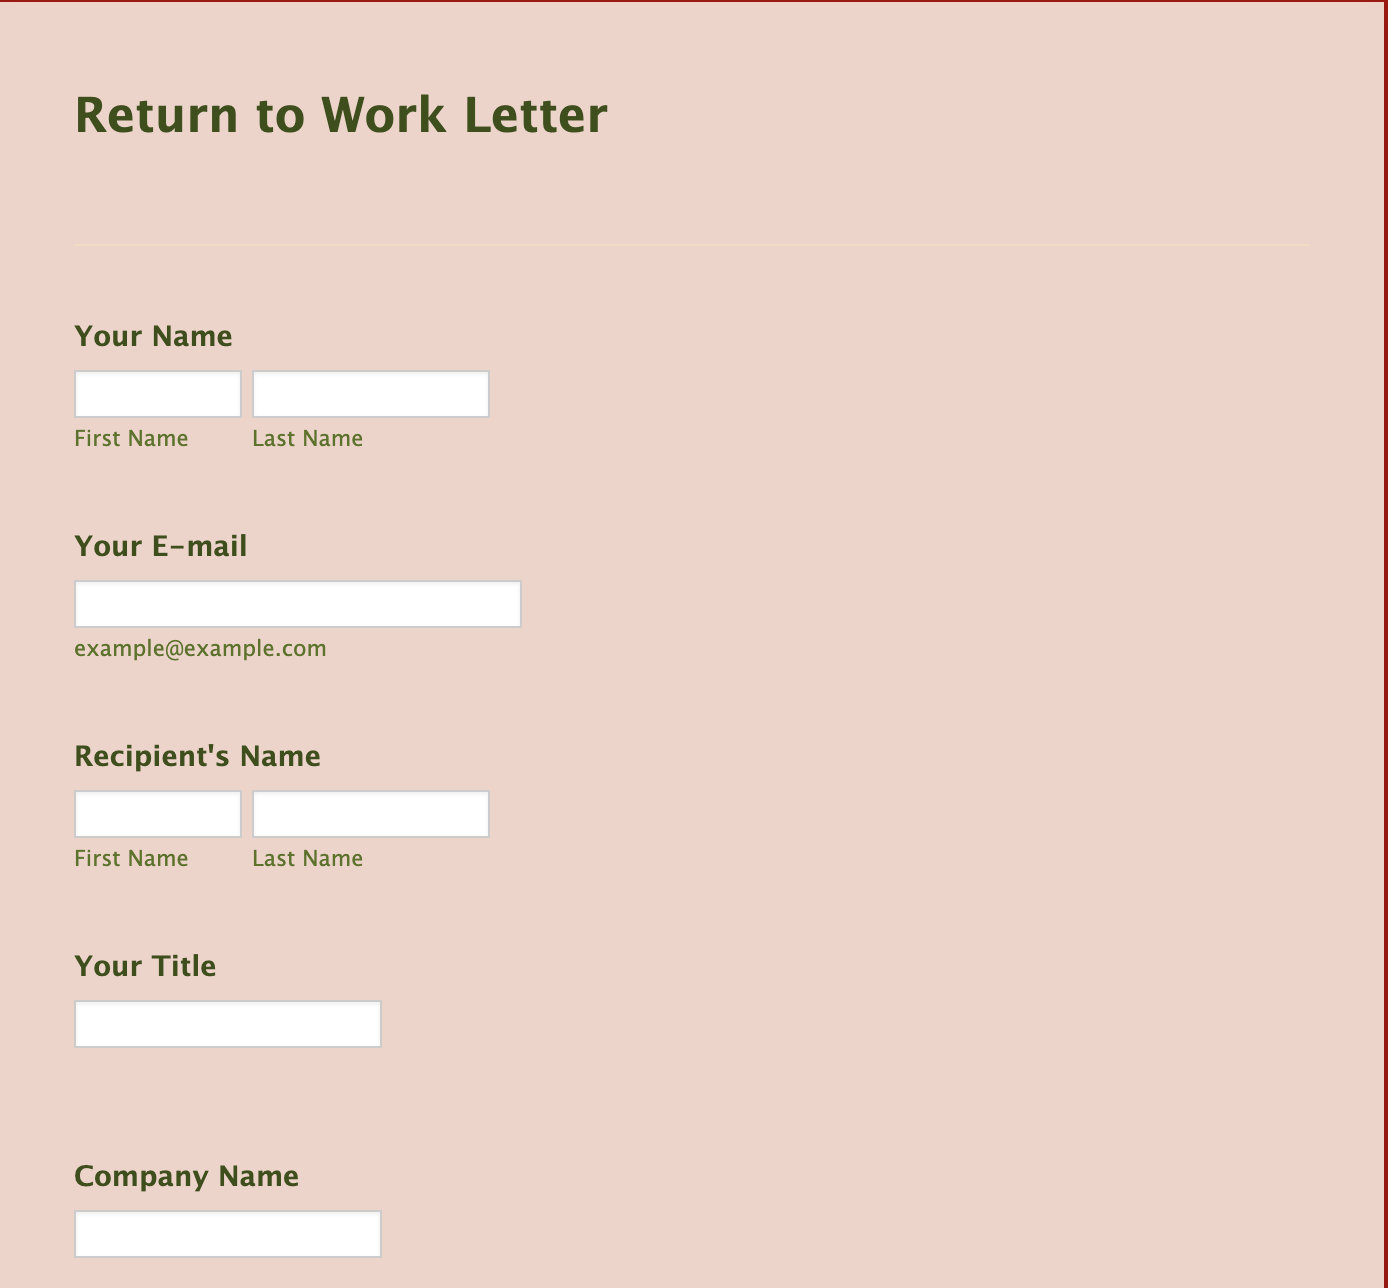 Return To Work Letter Form Template